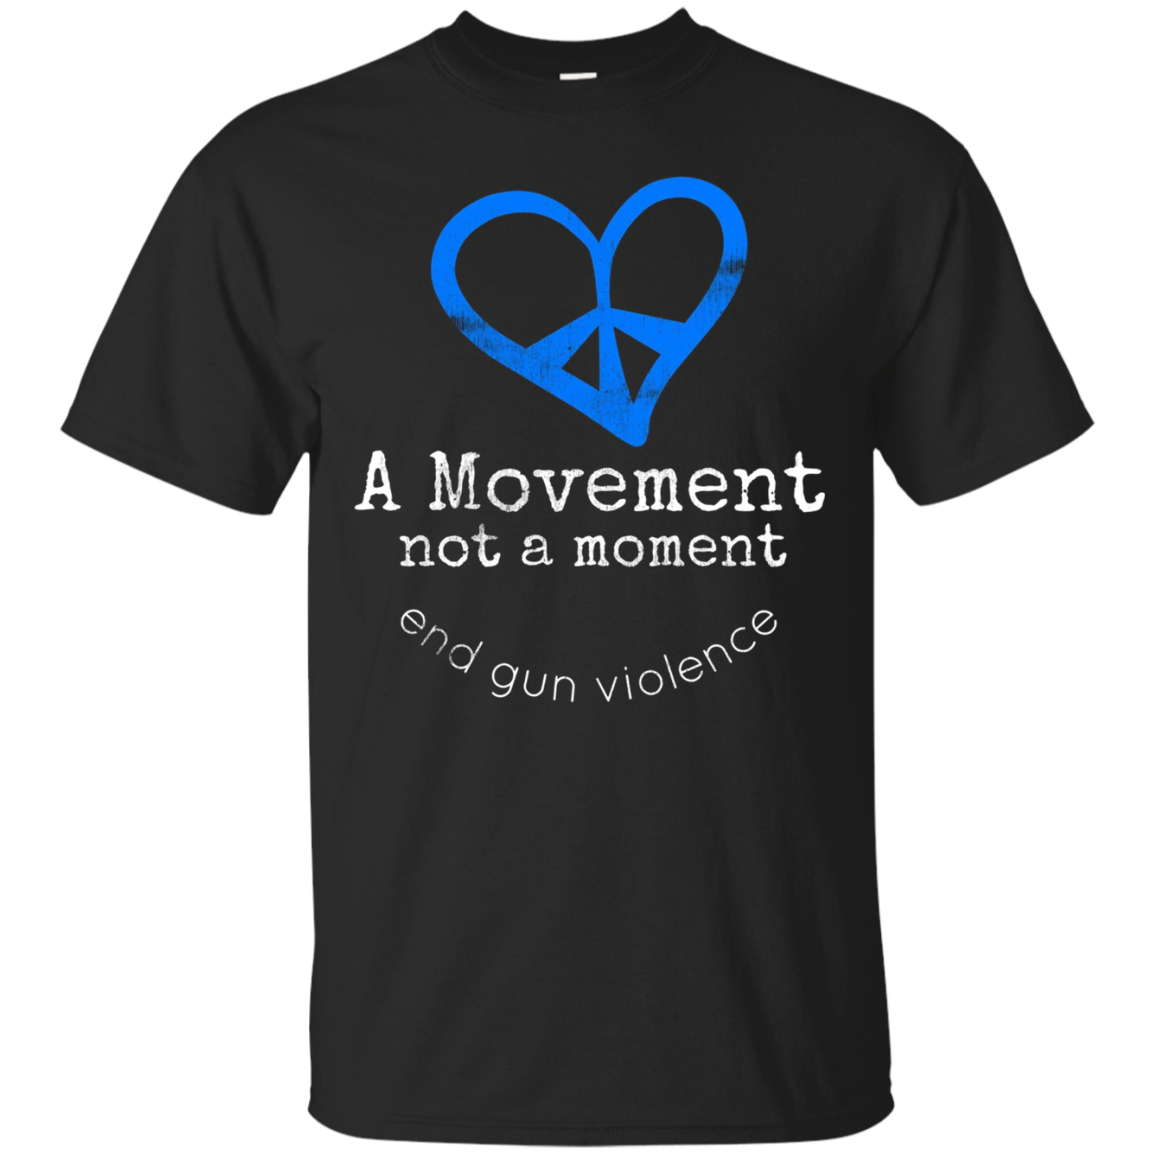 Enough Long Sleeve Shirt - A Movement not a Moment